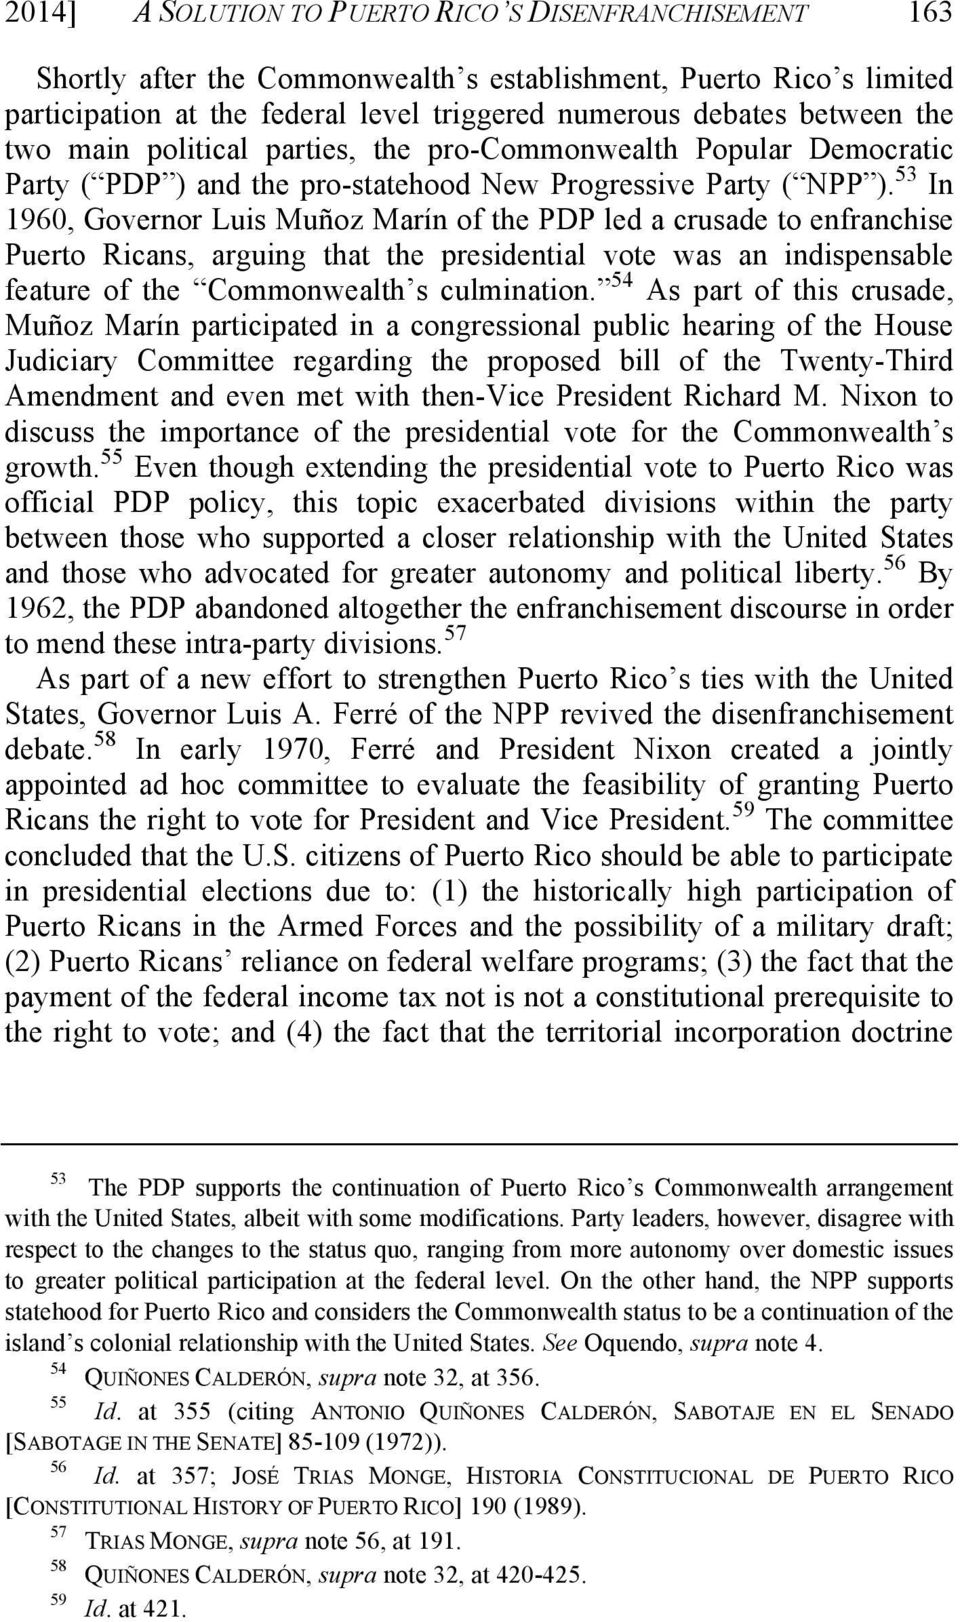 53 In 1960, Governor Luis Muñoz Marín of the PDP led a crusade to enfranchise Puerto Ricans, arguing that the presidential vote was an indispensable feature of the Commonwealth s culmination.